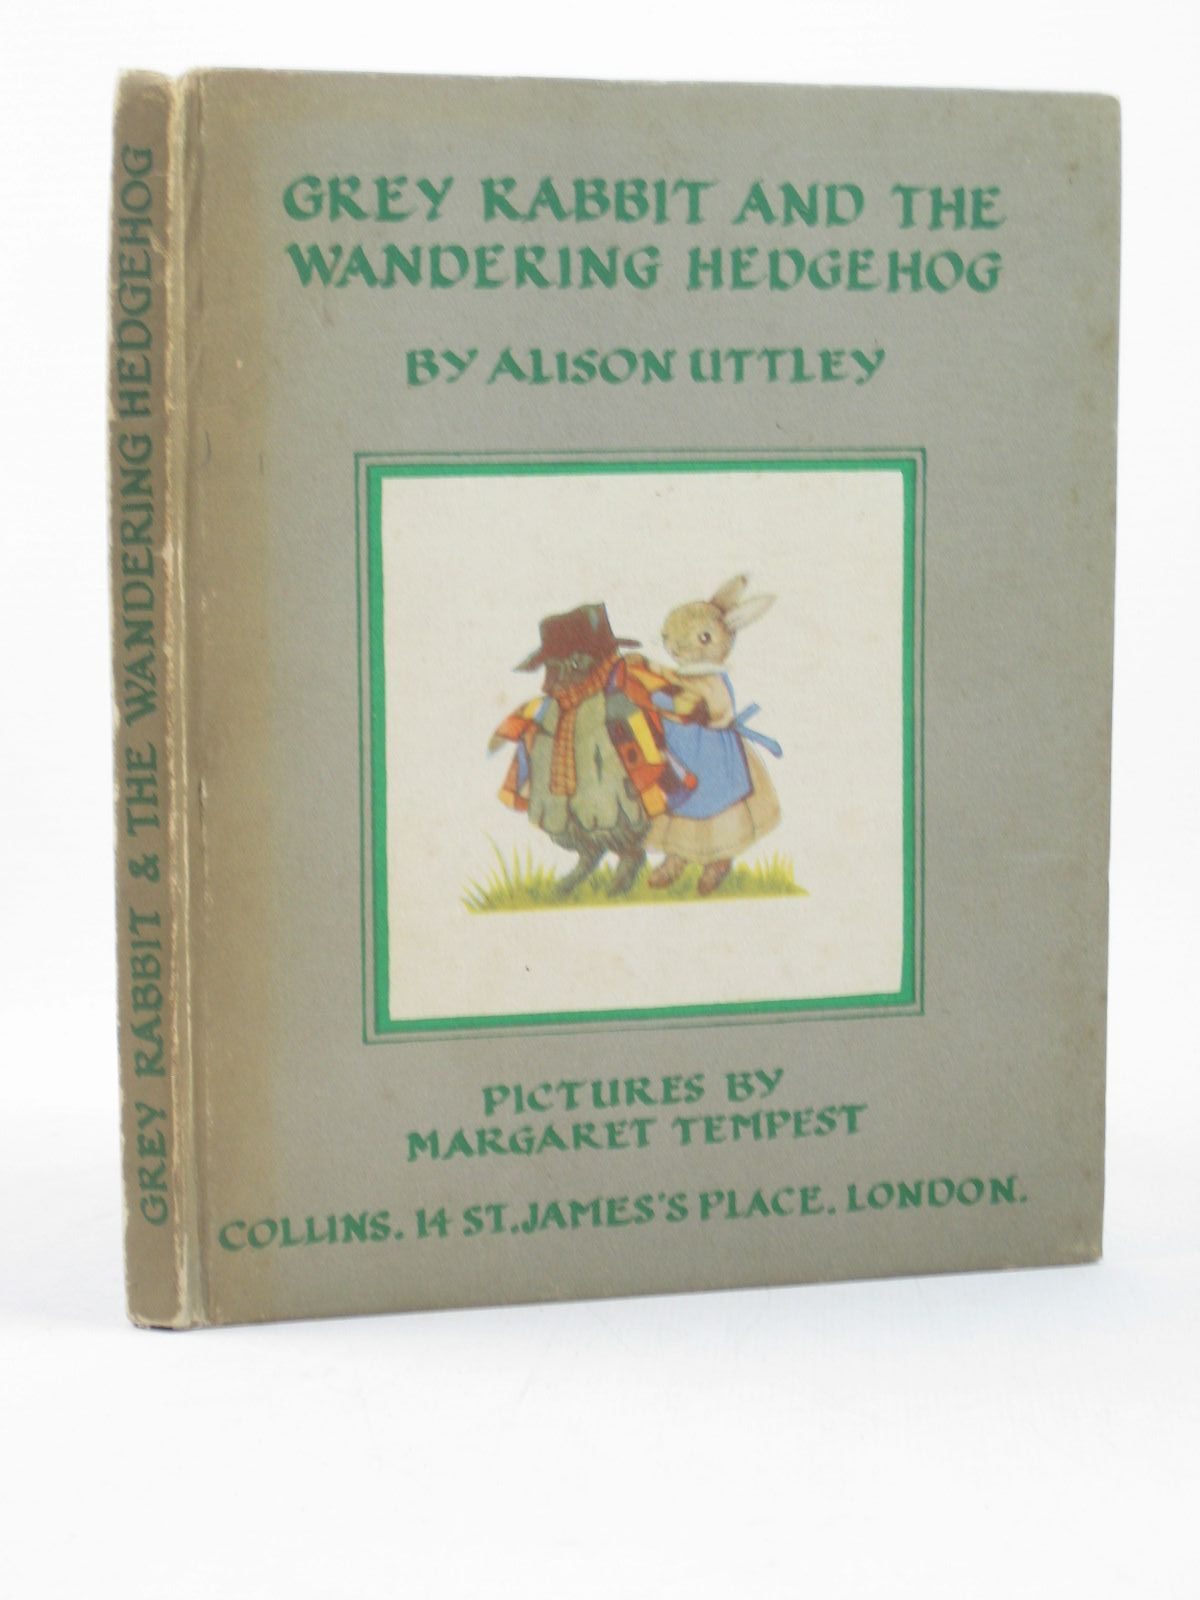 Photo of GREY RABBIT AND THE WANDERING HEDGEHOG written by Uttley, Alison illustrated by Tempest, Margaret published by Collins (STOCK CODE: 1312608)  for sale by Stella & Rose's Books